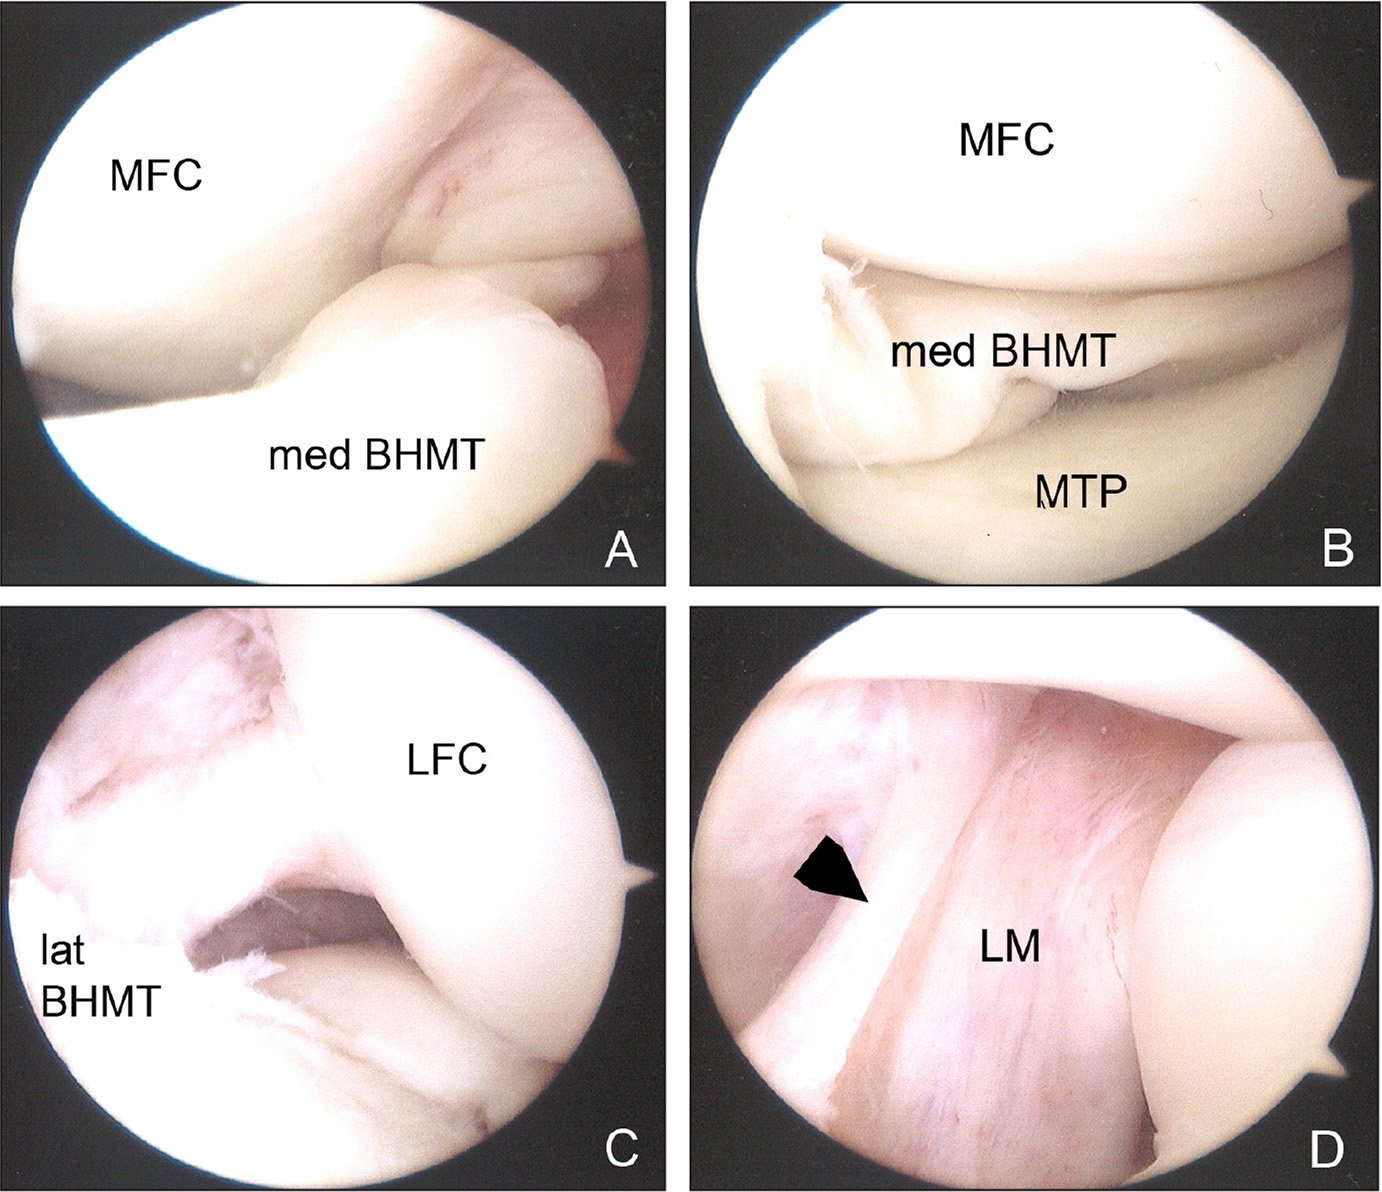 Images from a left knee taken from the anterolateral portal during diagnostic arthroscopy. The medial